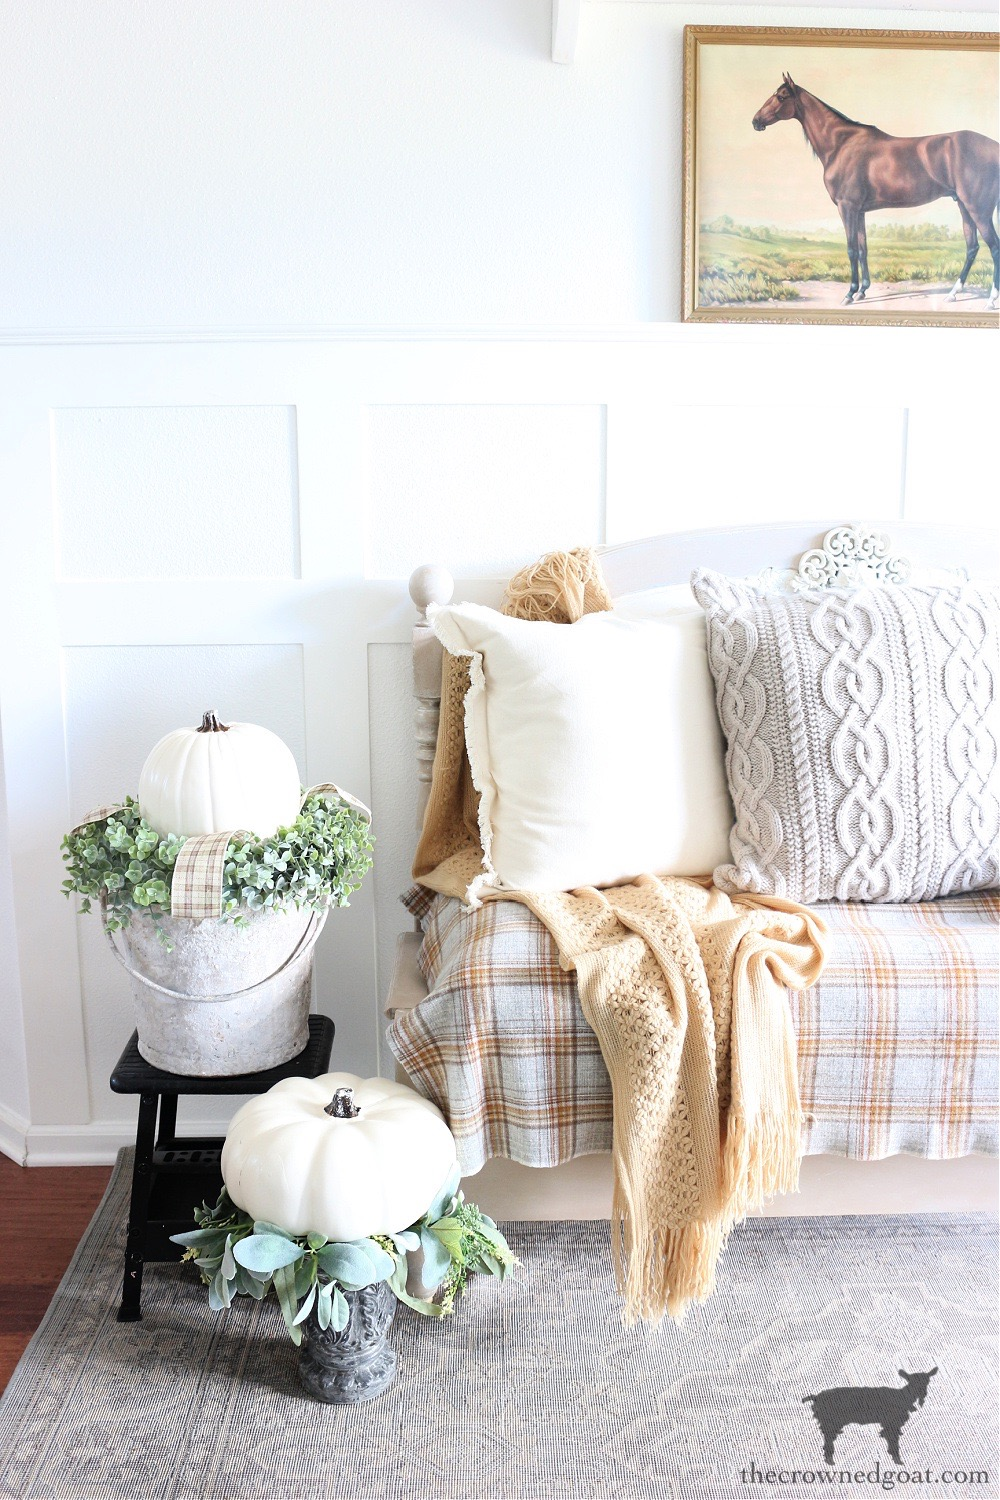 Fall Entry Inspiration with Pumpkins-The Crowned Goat